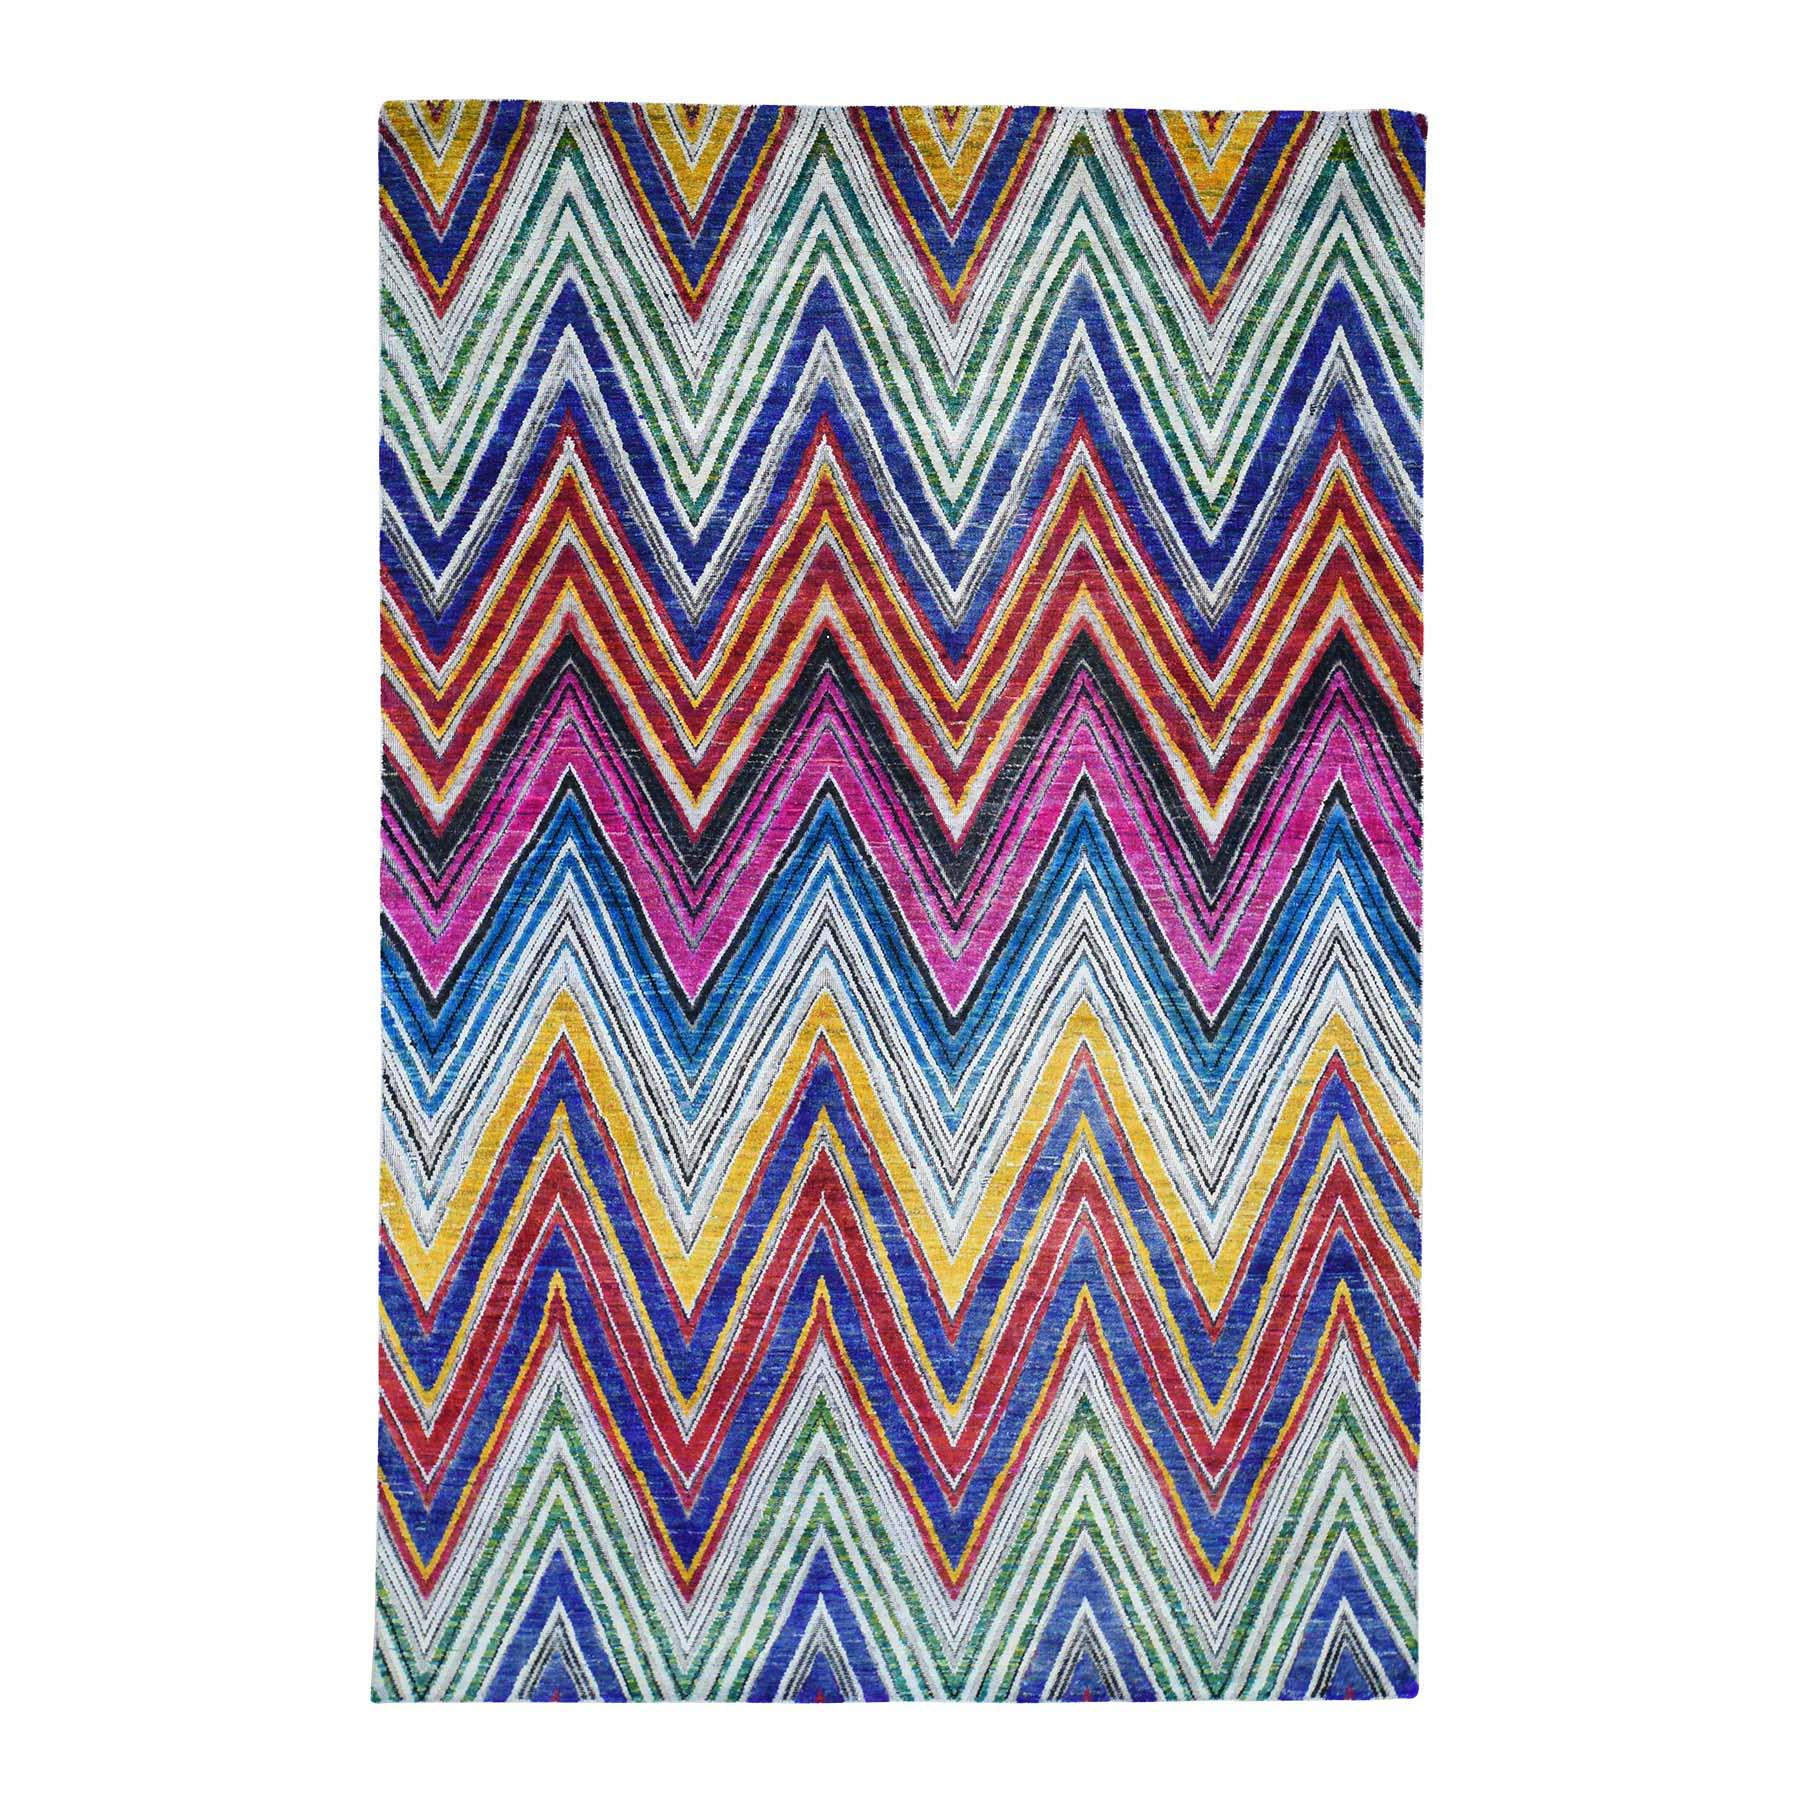 6'x9' Chevron Design Sari Silk with Textured Wool Hand-Knotted Oriental Rug